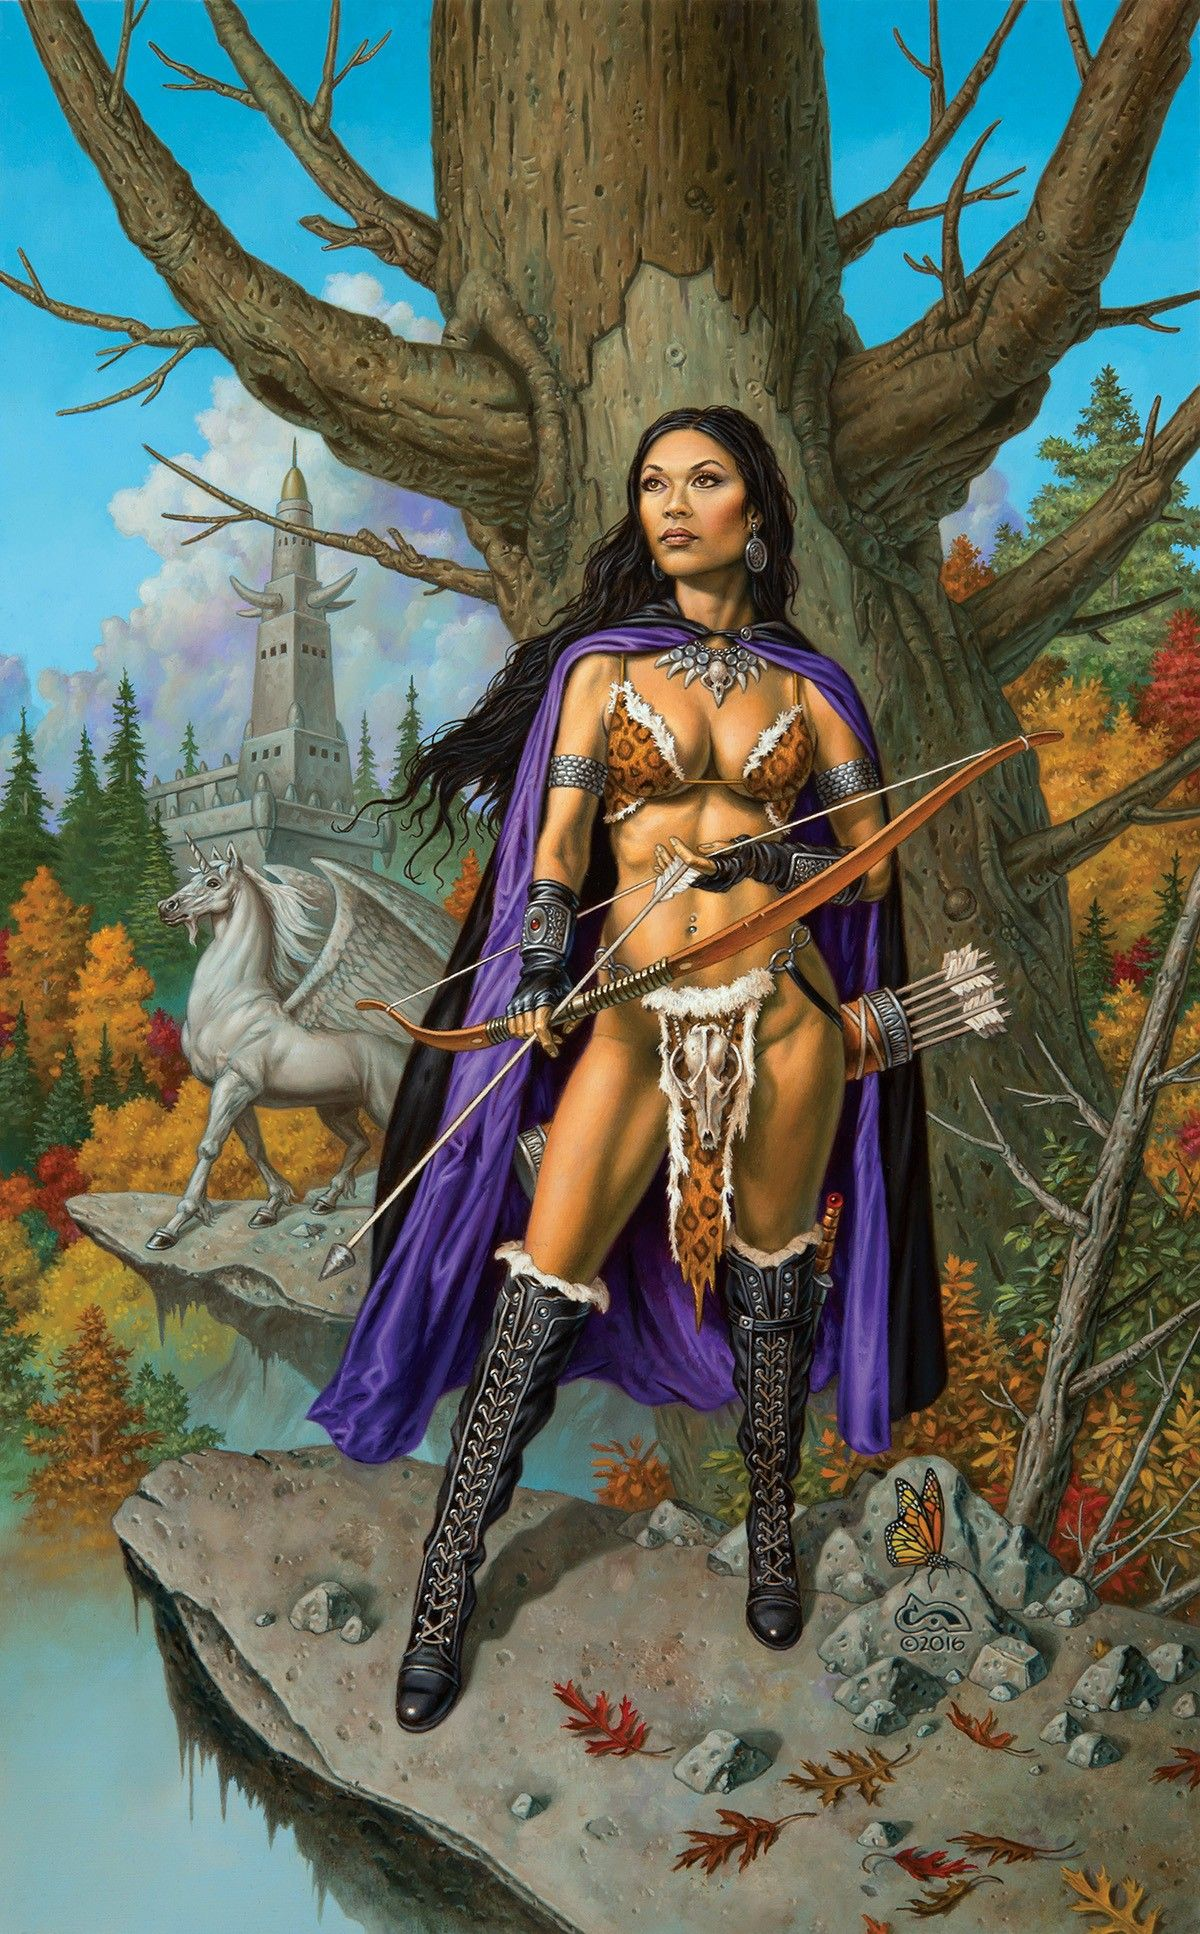 Pin by Eric Hurick on Anime Girls 02 | Warrior woman